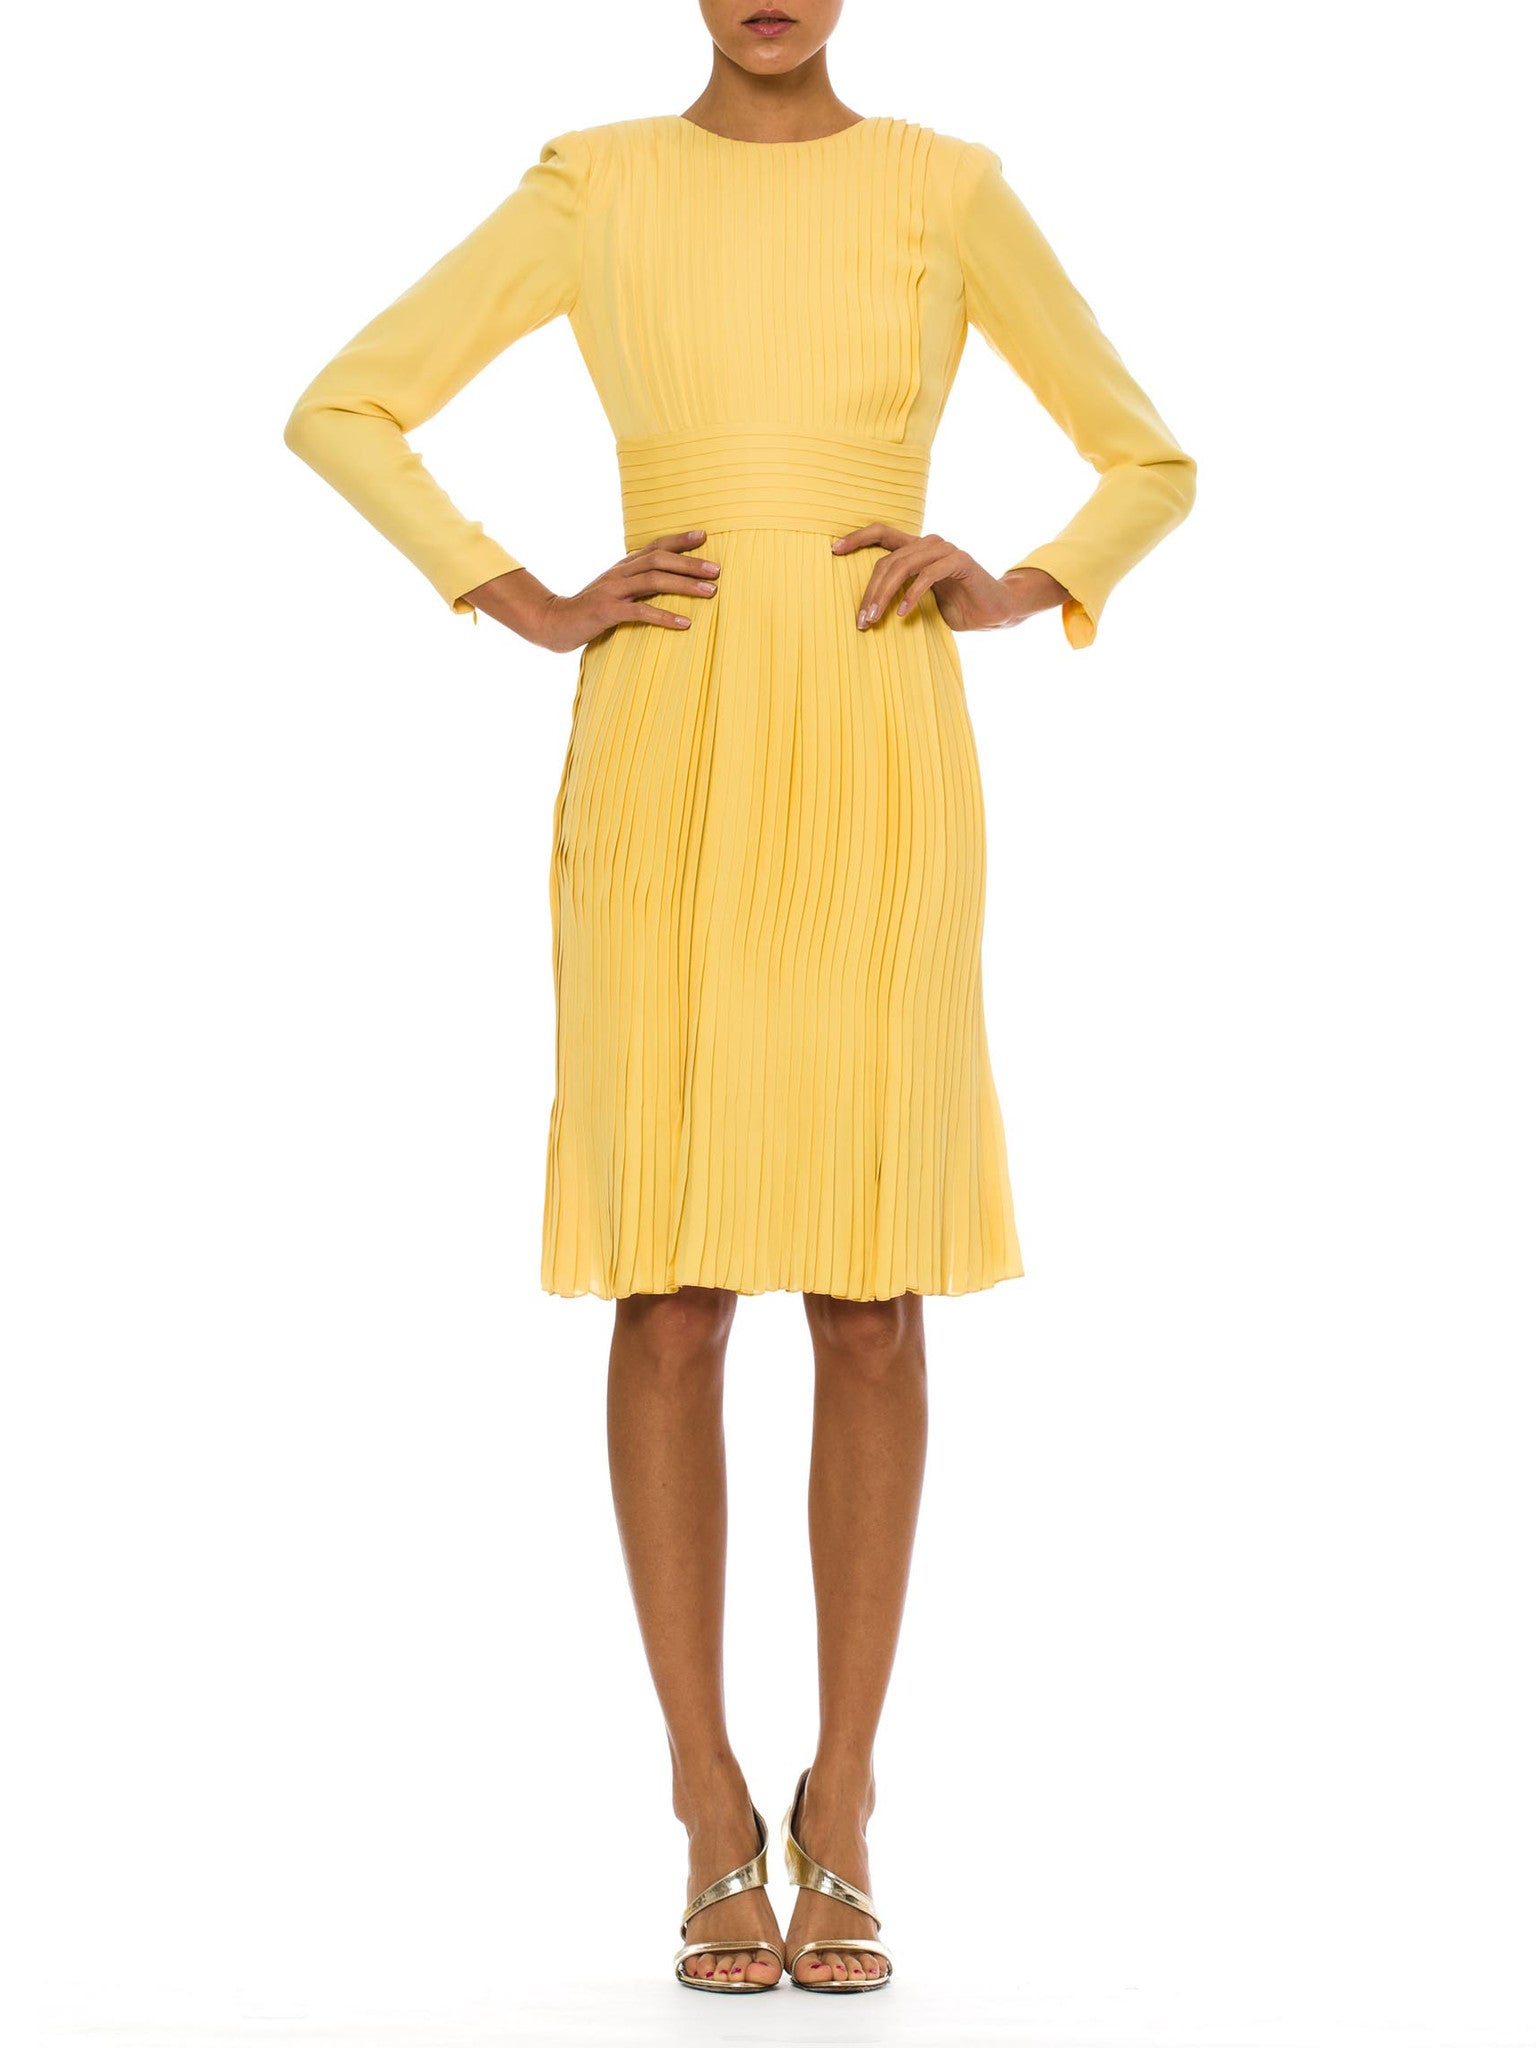 1970s Vintage Pale Yellow Pleated Silk Dress by JAMES GALANOS – MORPHEW